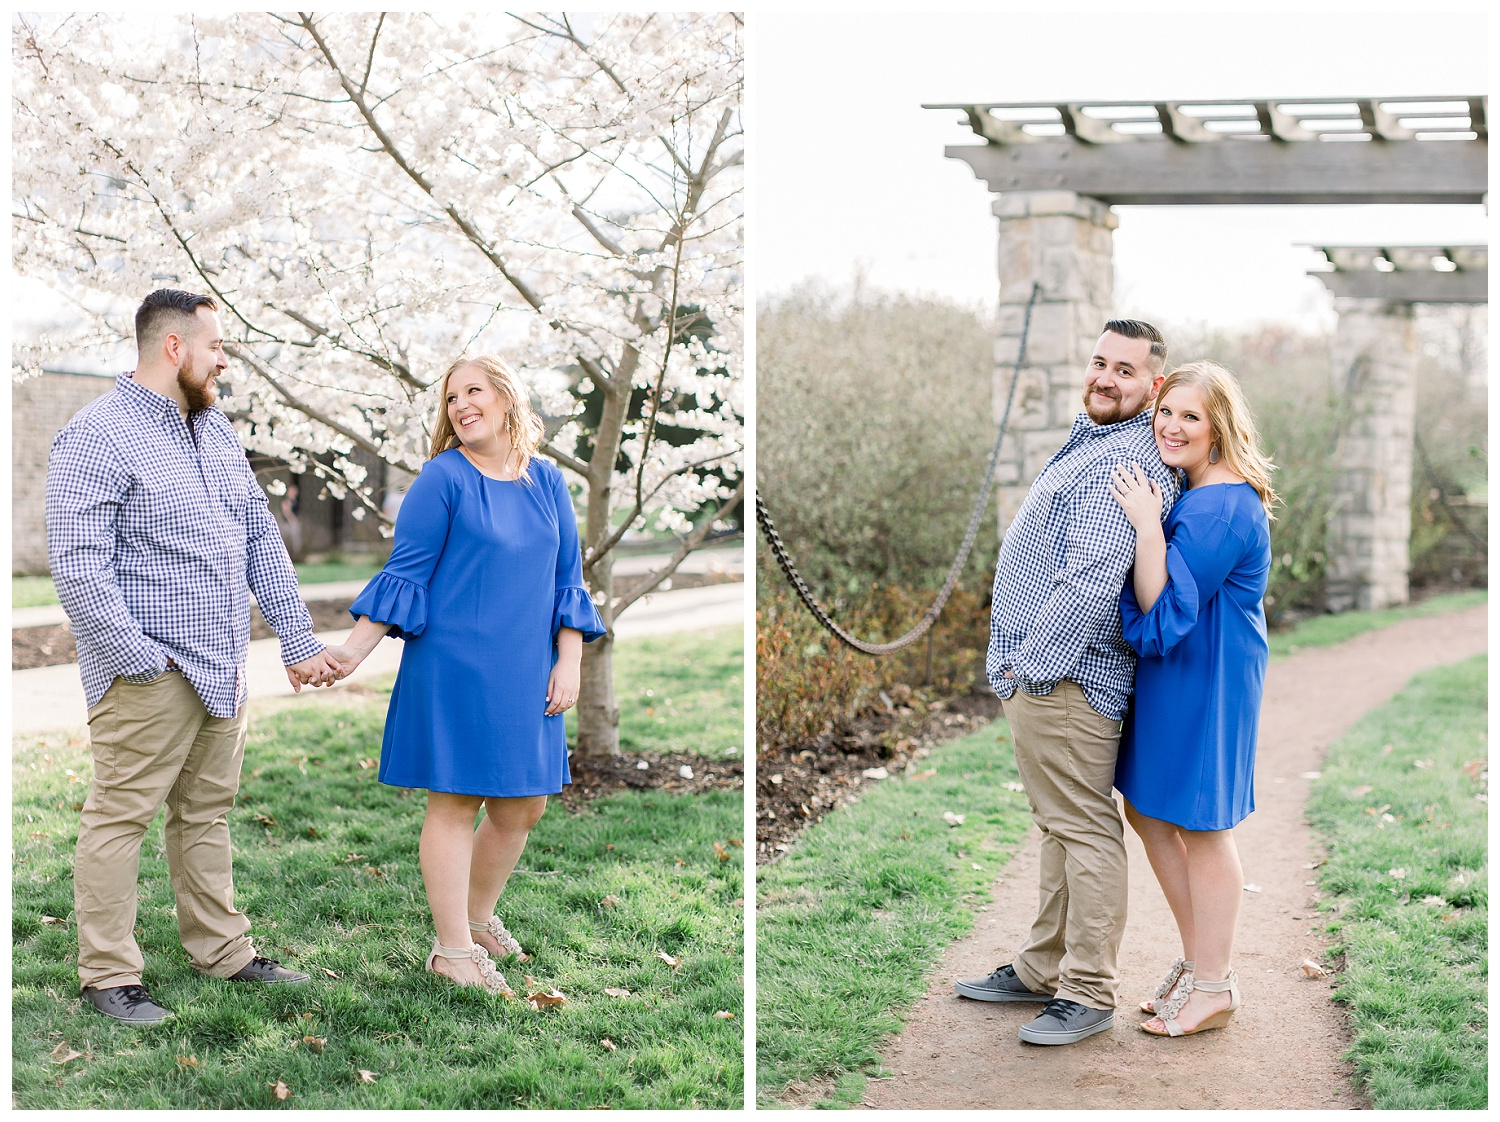 Engagement-Photos-at-Loose-Park-Springtime-KC-Elizabeth-Ladean-Photography_A+D-0407--_6879.jpg